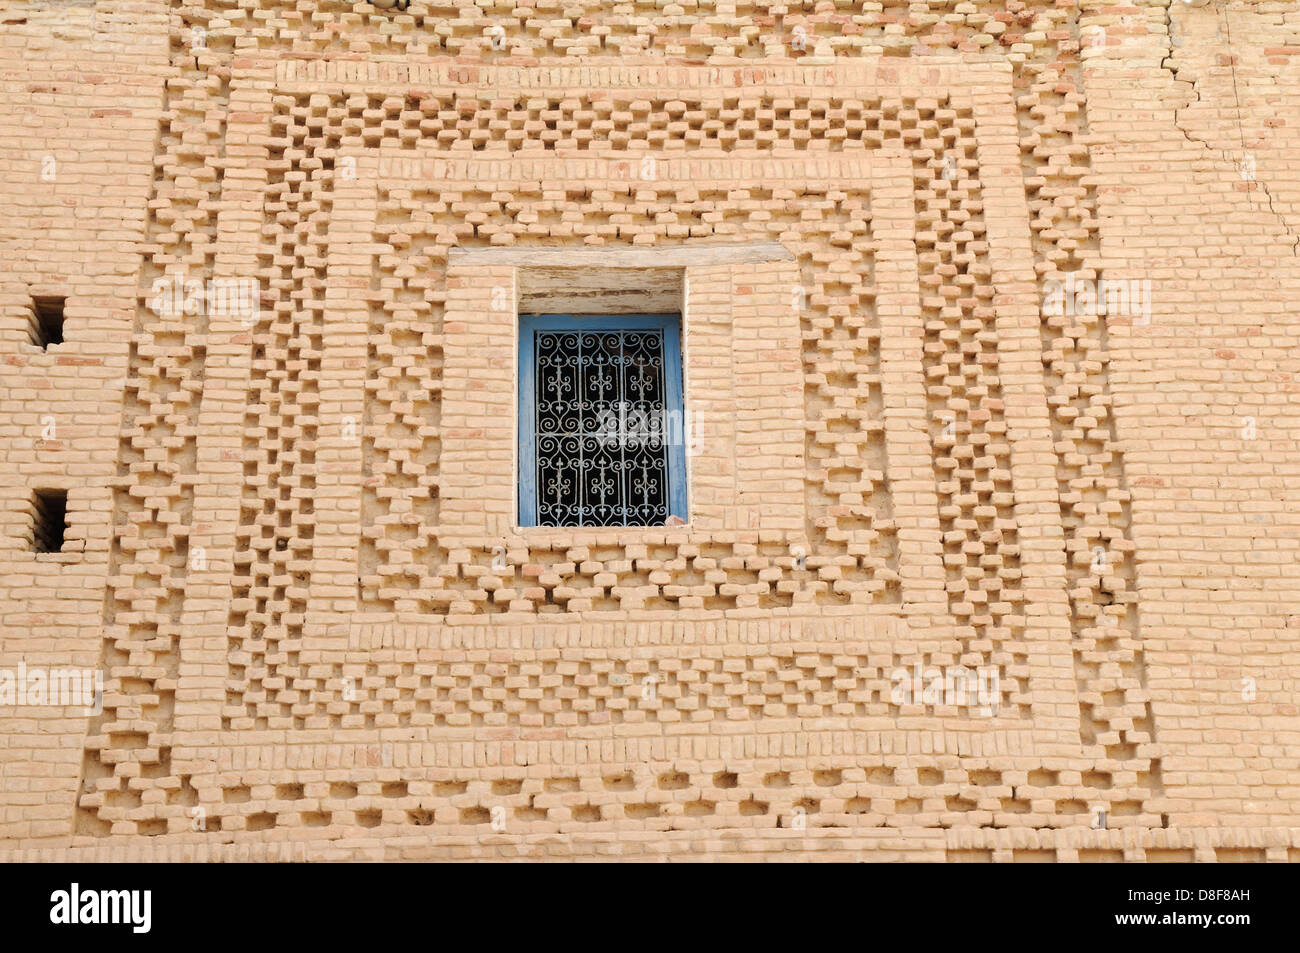 A blue painted window surrounded by an decorative pattern of air dried bricks in the old Medina Tozeur Tunisia - Stock Image